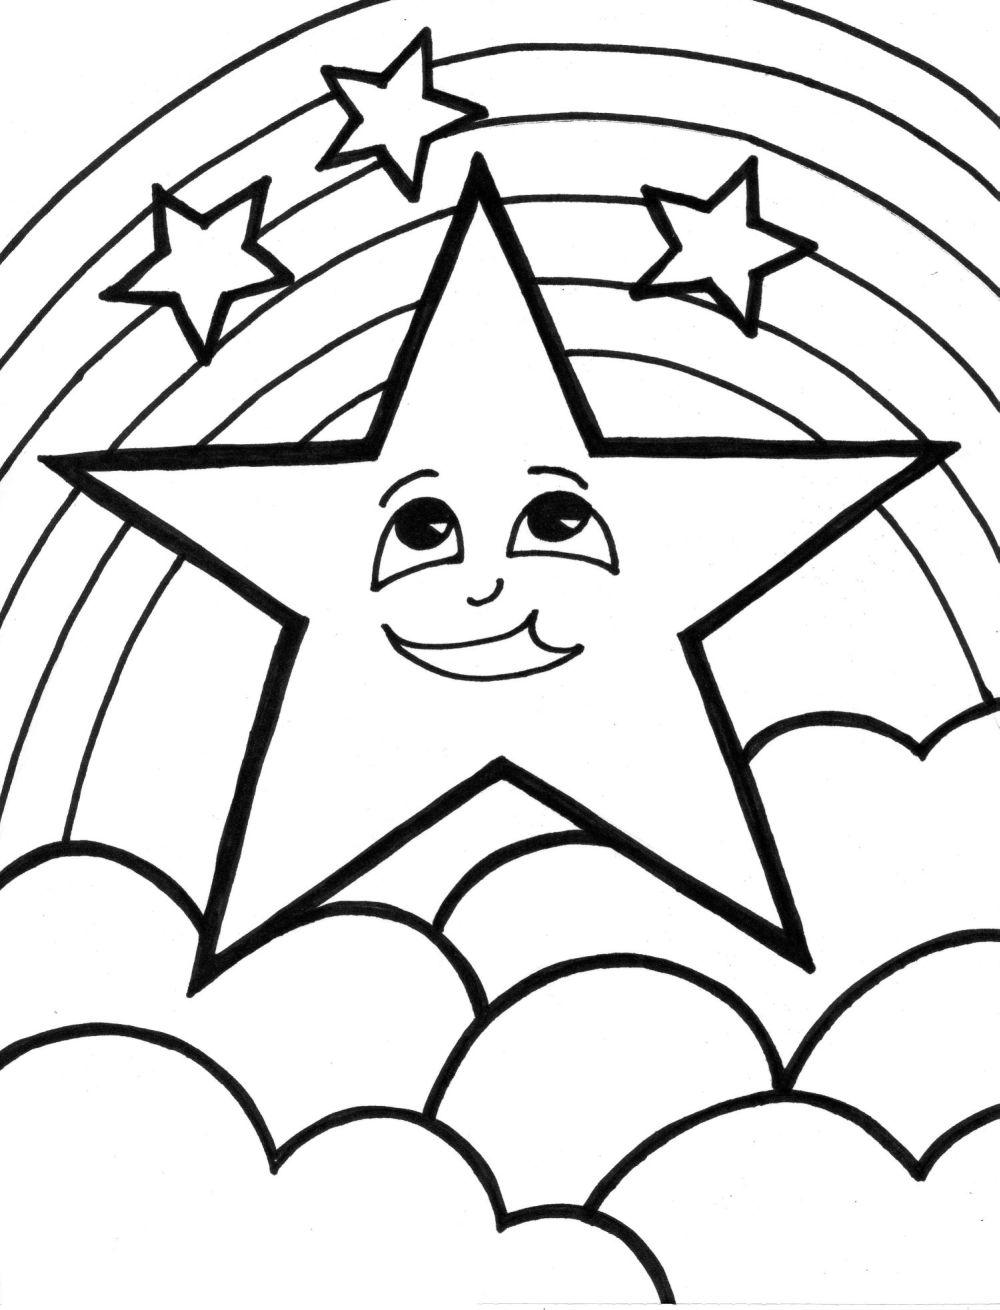 printable pictures of stars 6 best images of small star stencils free printable printable pictures of stars